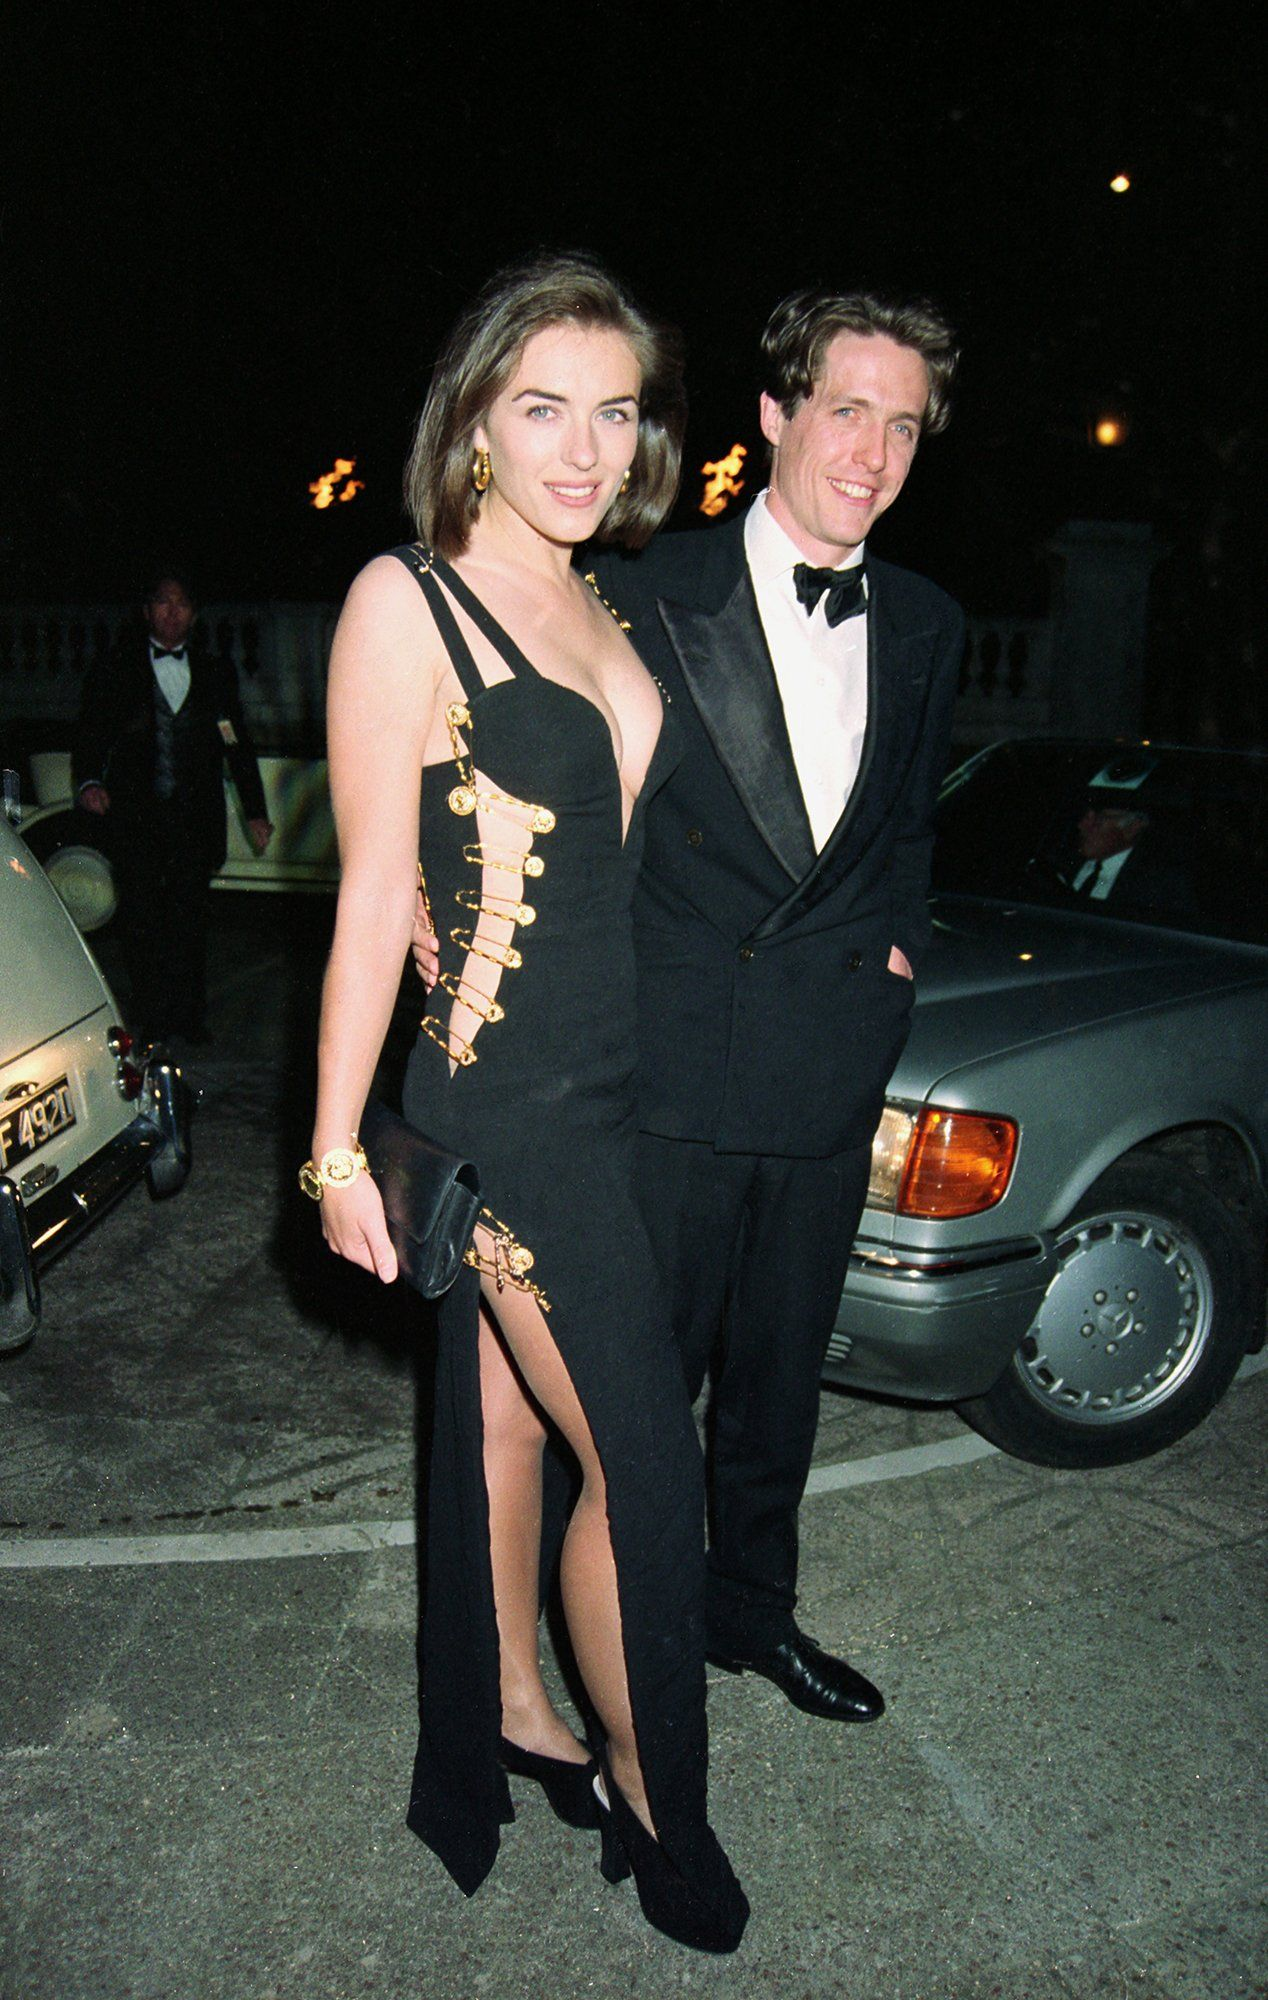 The Best Red Carpet Moments Of The 90s Elizabeth Hurley Gwyneth Paltrow And Madonna Iconic Dresses Celebrity Dresses Elizabeth Hurley